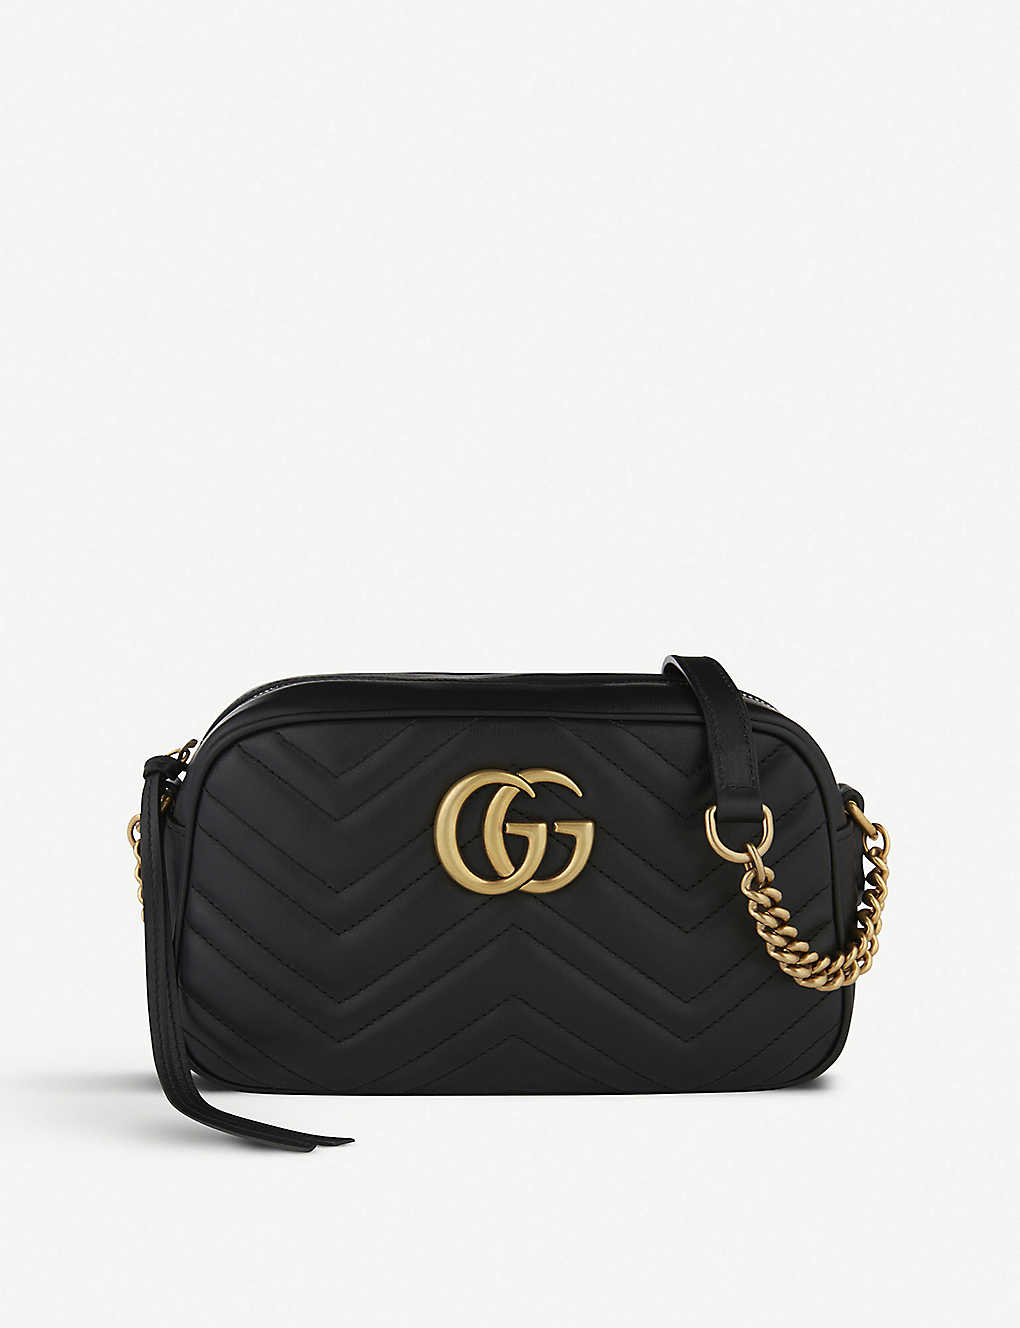 d5131206 GUCCI - Marmont matelassé leather shoulder bag | Selfridges.com